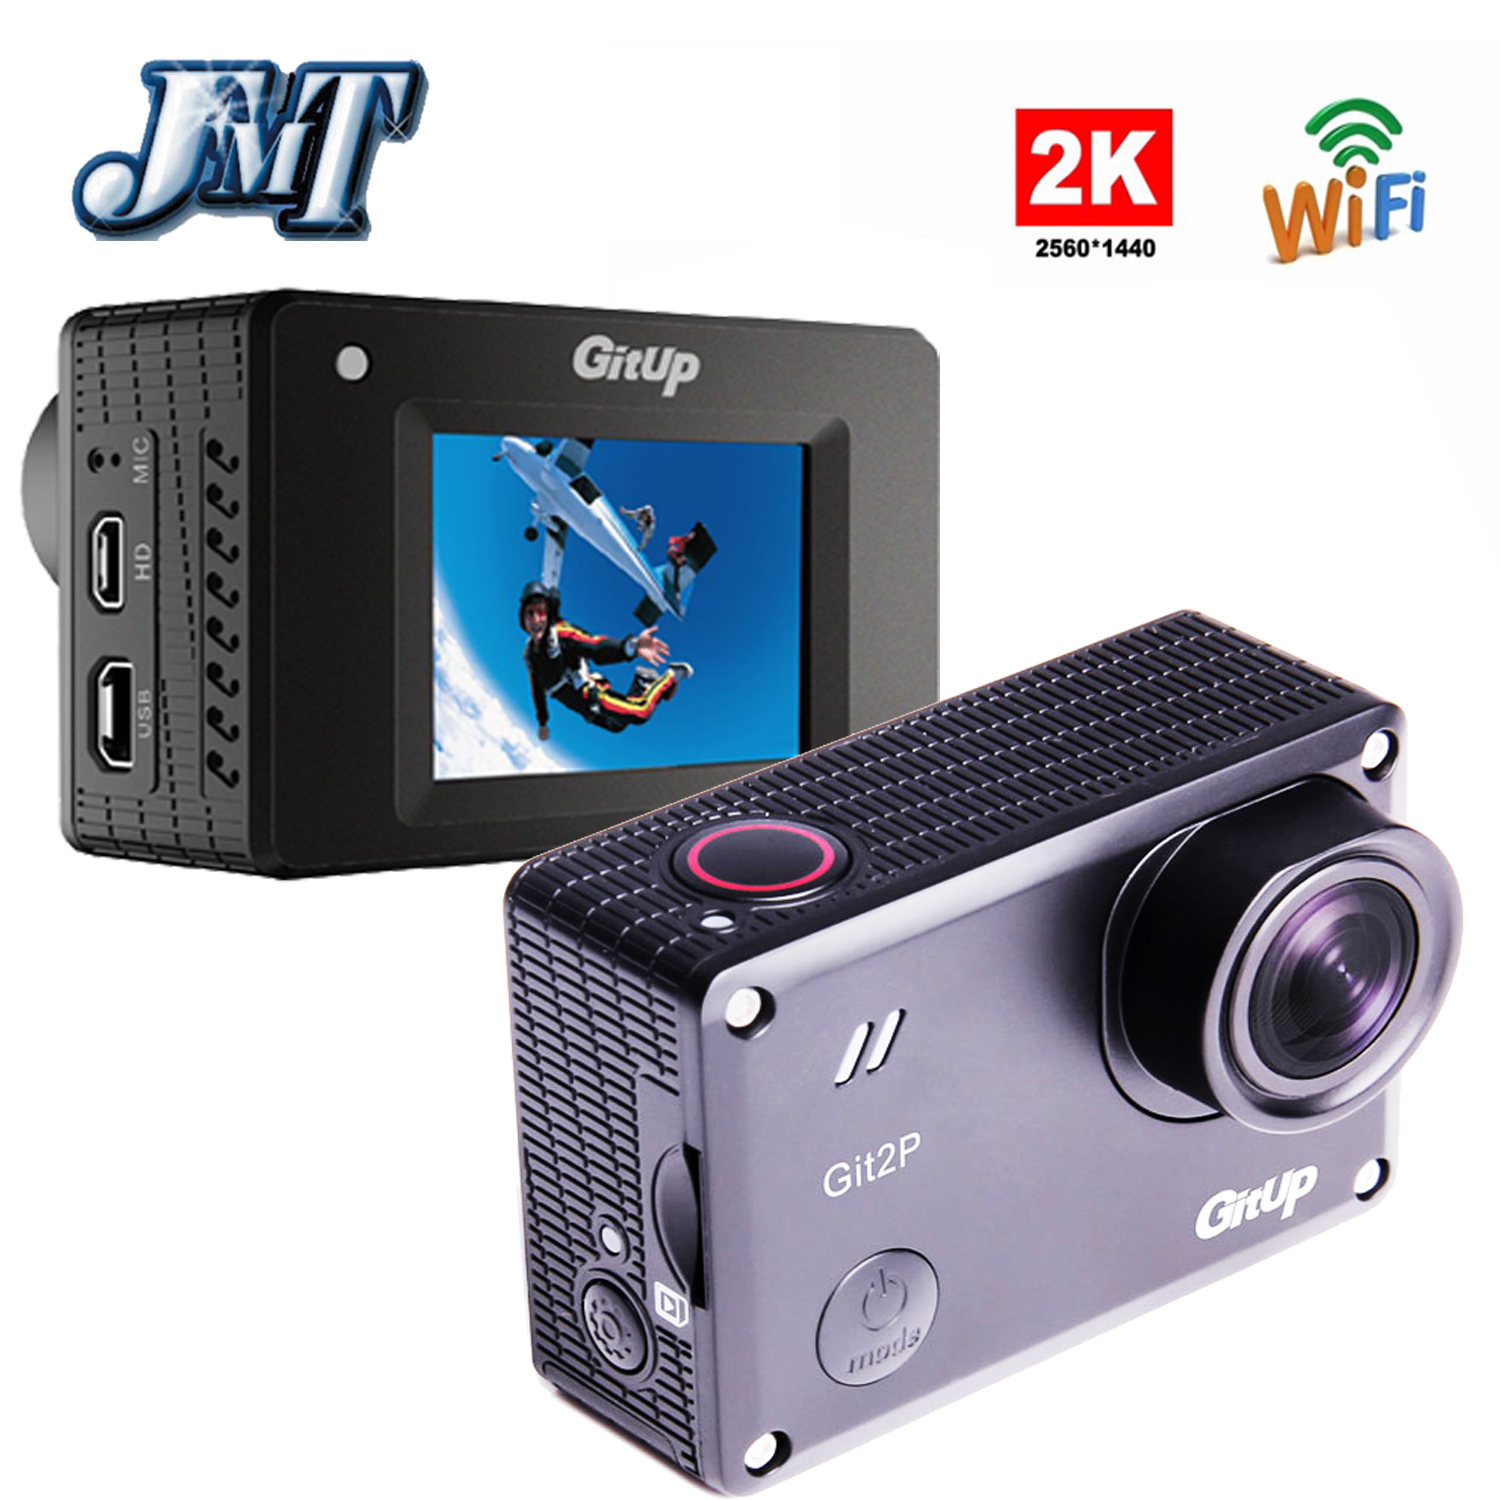 JMT GitUP Git2P Action Camera Standard 2K Wifi Sports DV PRO Full HD 1080P 30m Waterproof mini Camcorder 1.5 inch Novatek 96660 original gitup git2 standard packing 2k wifi sports camera full hd for sony imx206 16mp sensor extra 1pcs battery dual charger